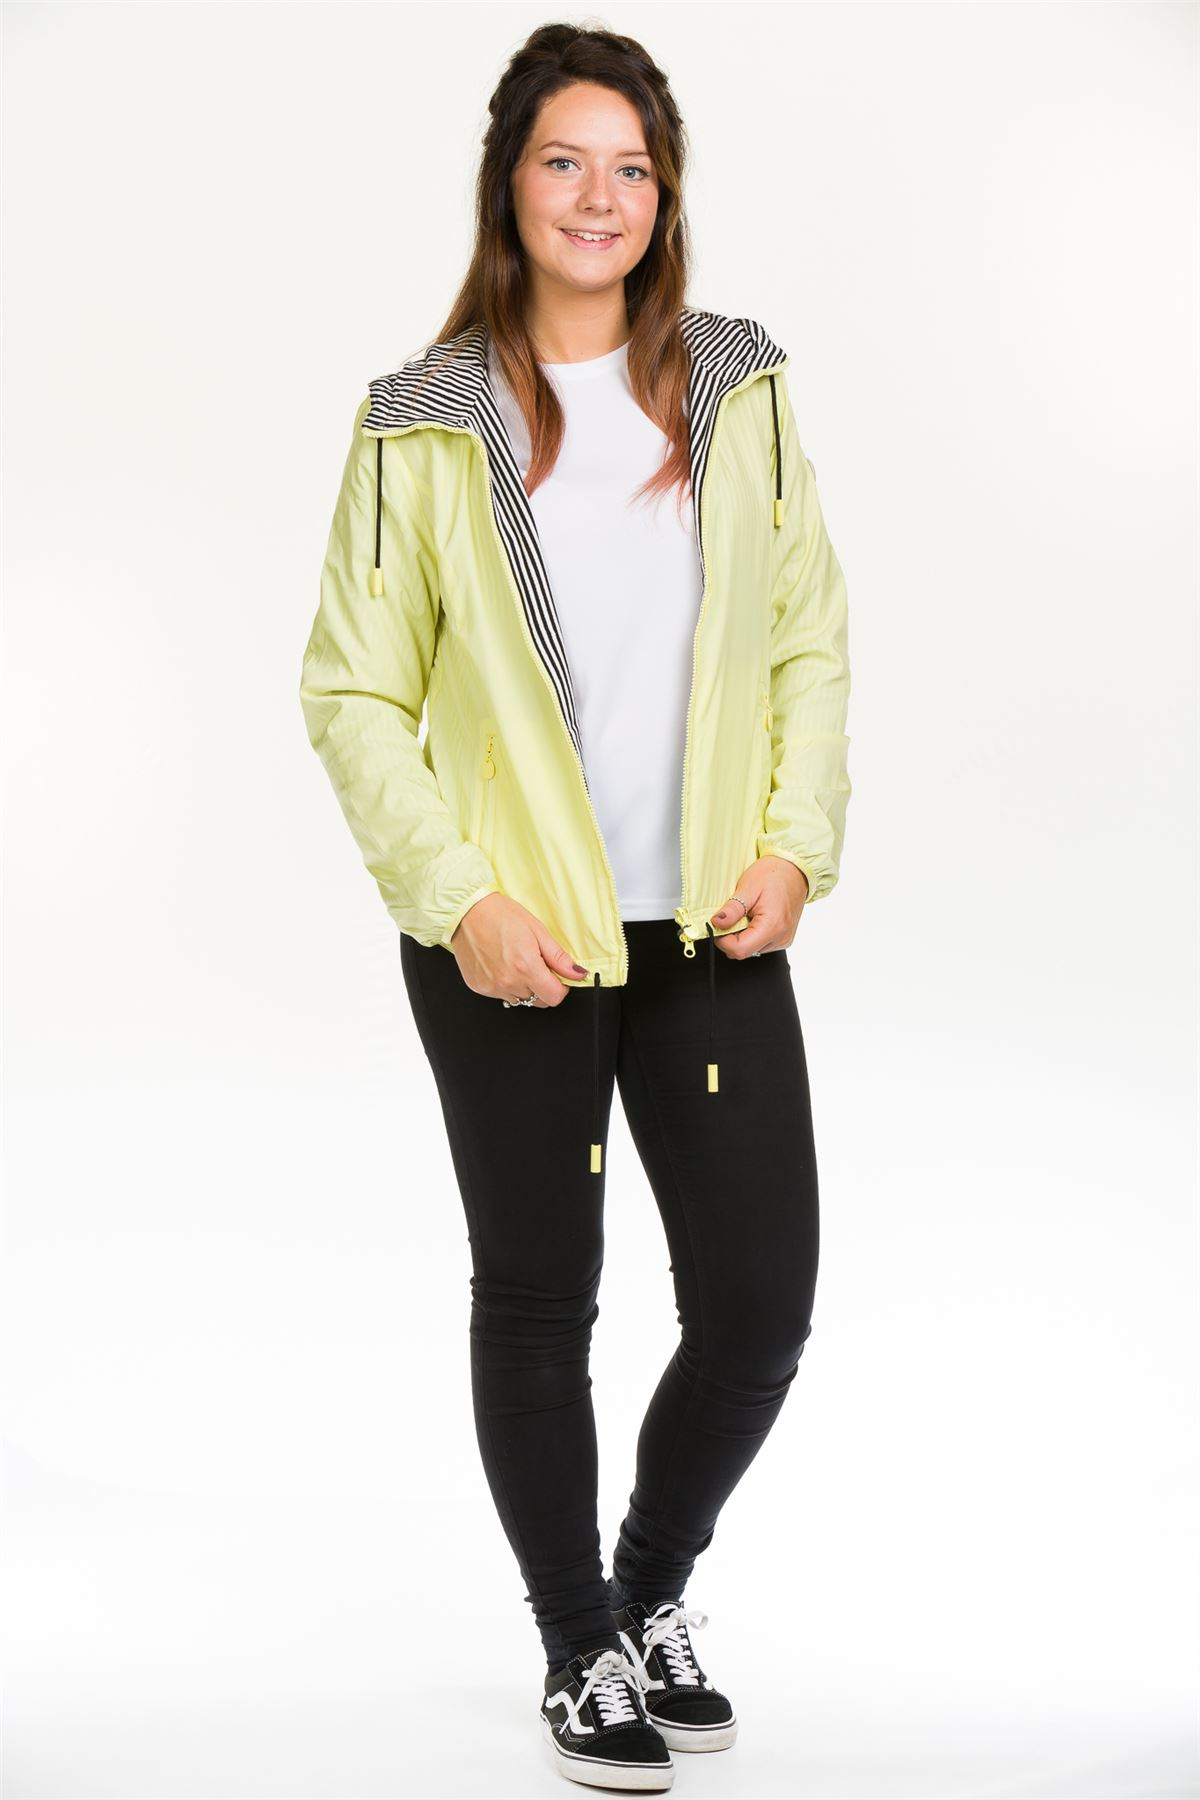 Ladies-Hooded-Jacket-Cotton-Lining-Zipper-Red-Yellow-Casual-amp-Sports-Outdoor